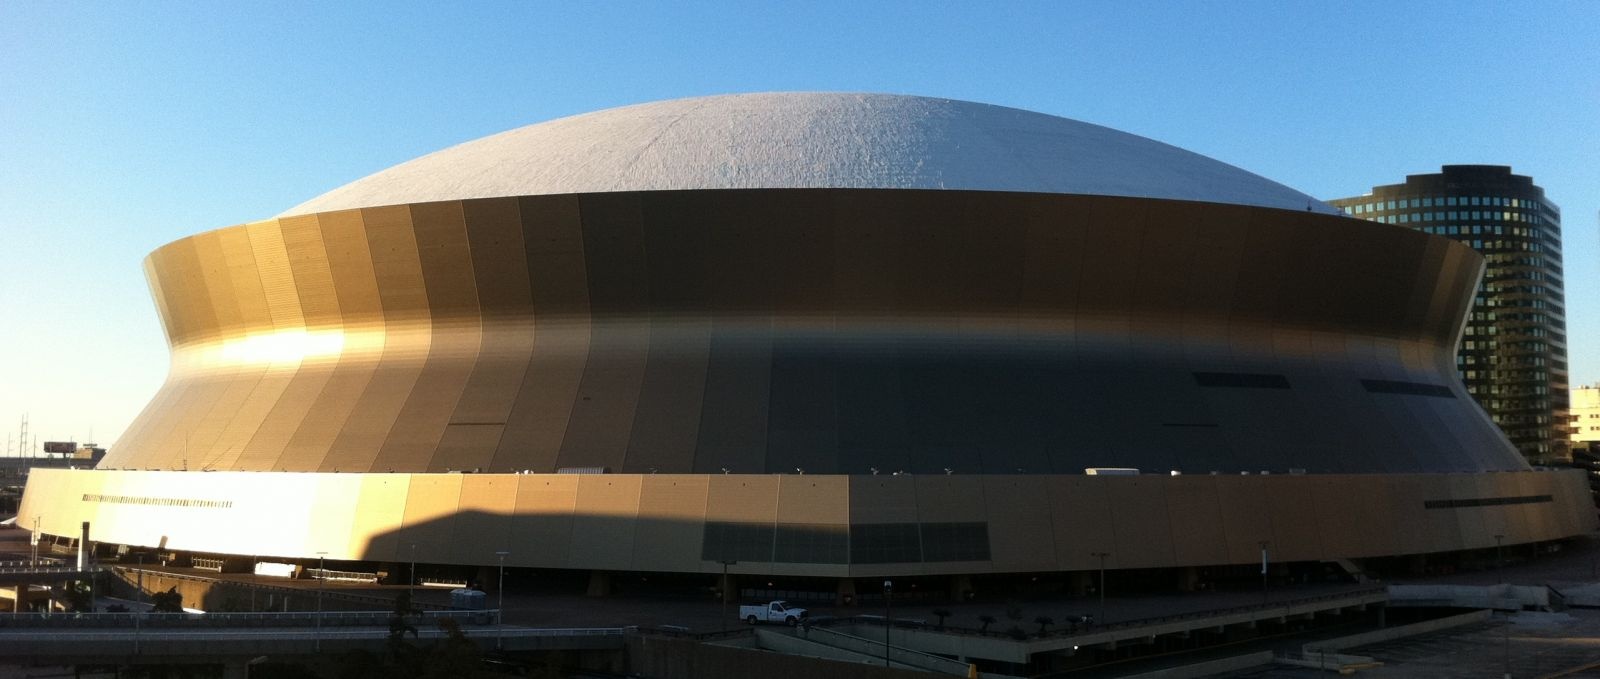 Mercedes benz superdome experience new orleans for Where is the mercedes benz superdome